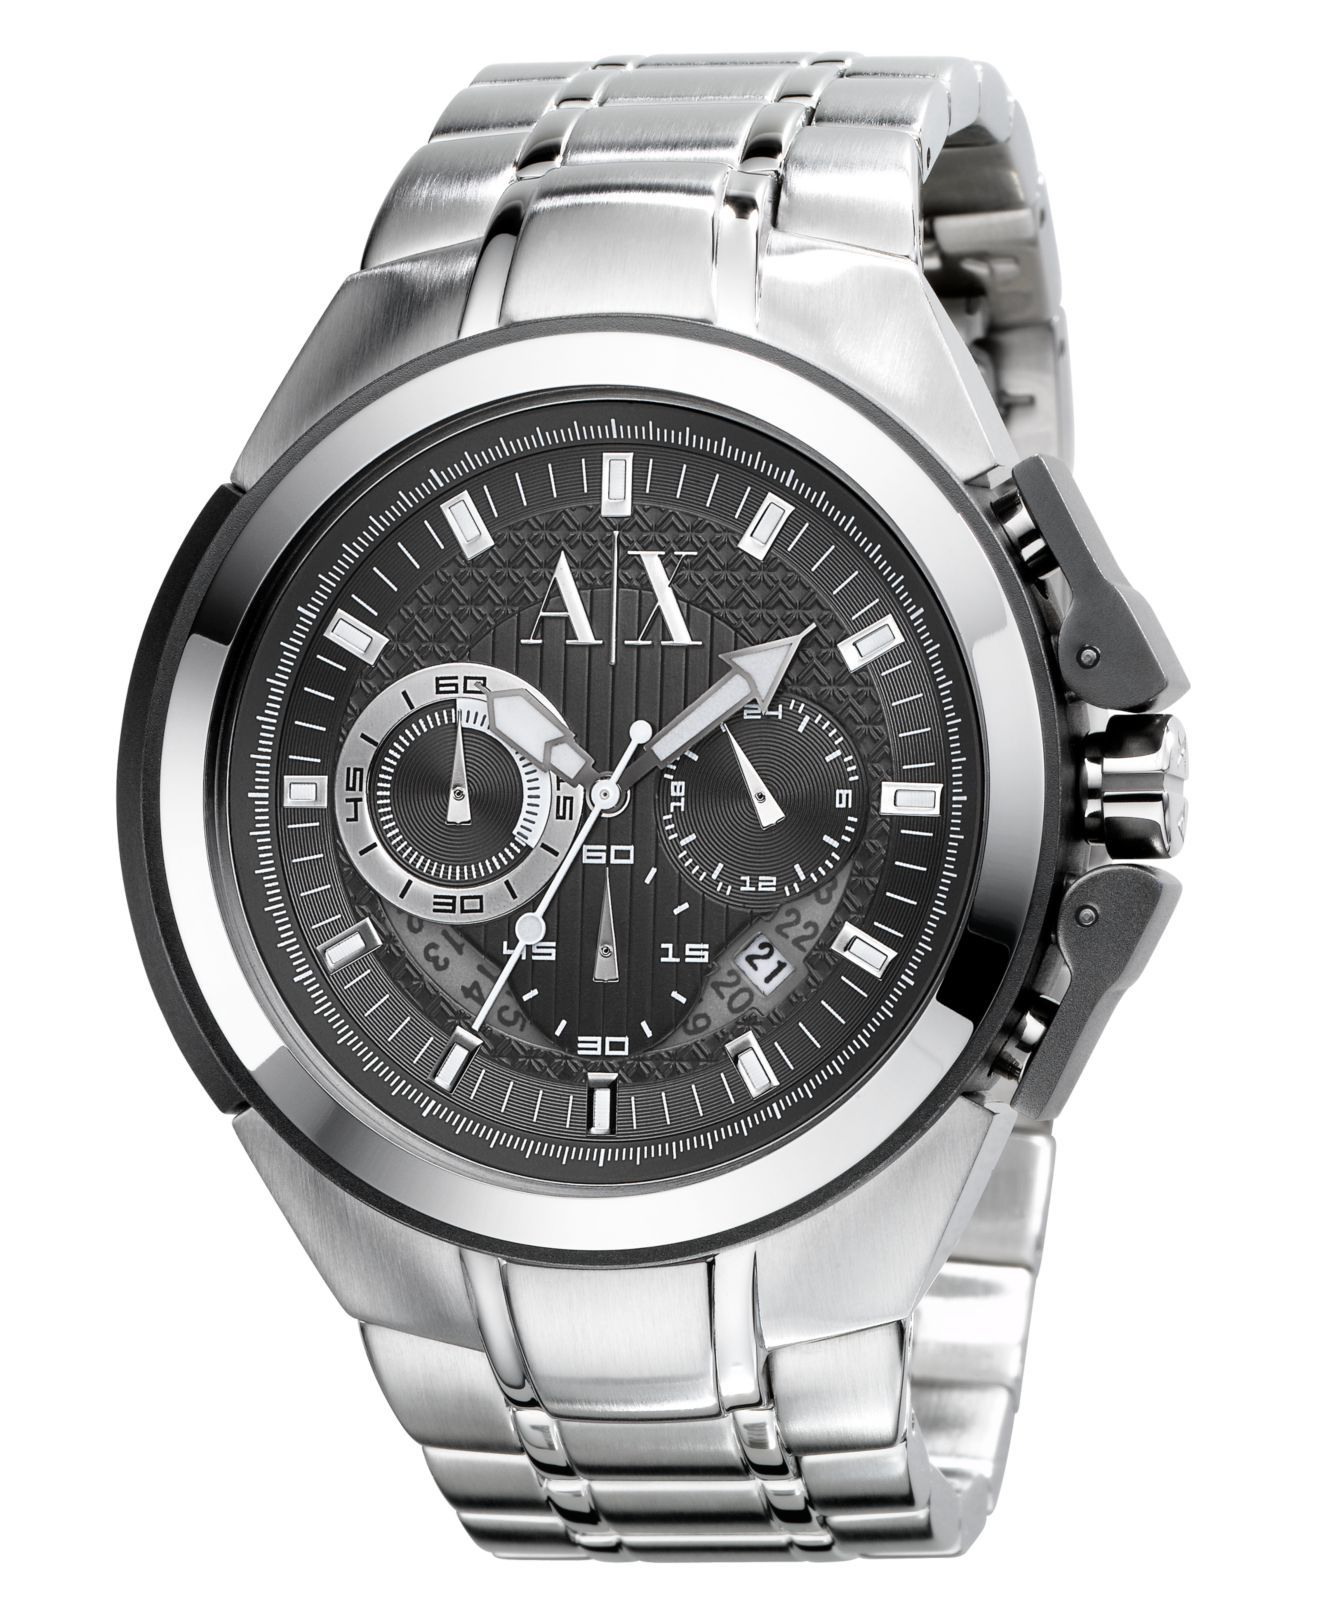 f787f5350 A|X Armani Exchange Watch, Men's Stainless Steel Bracelet 45mm AX1039 - All  Watches - Jewelry & Watches - Macy's